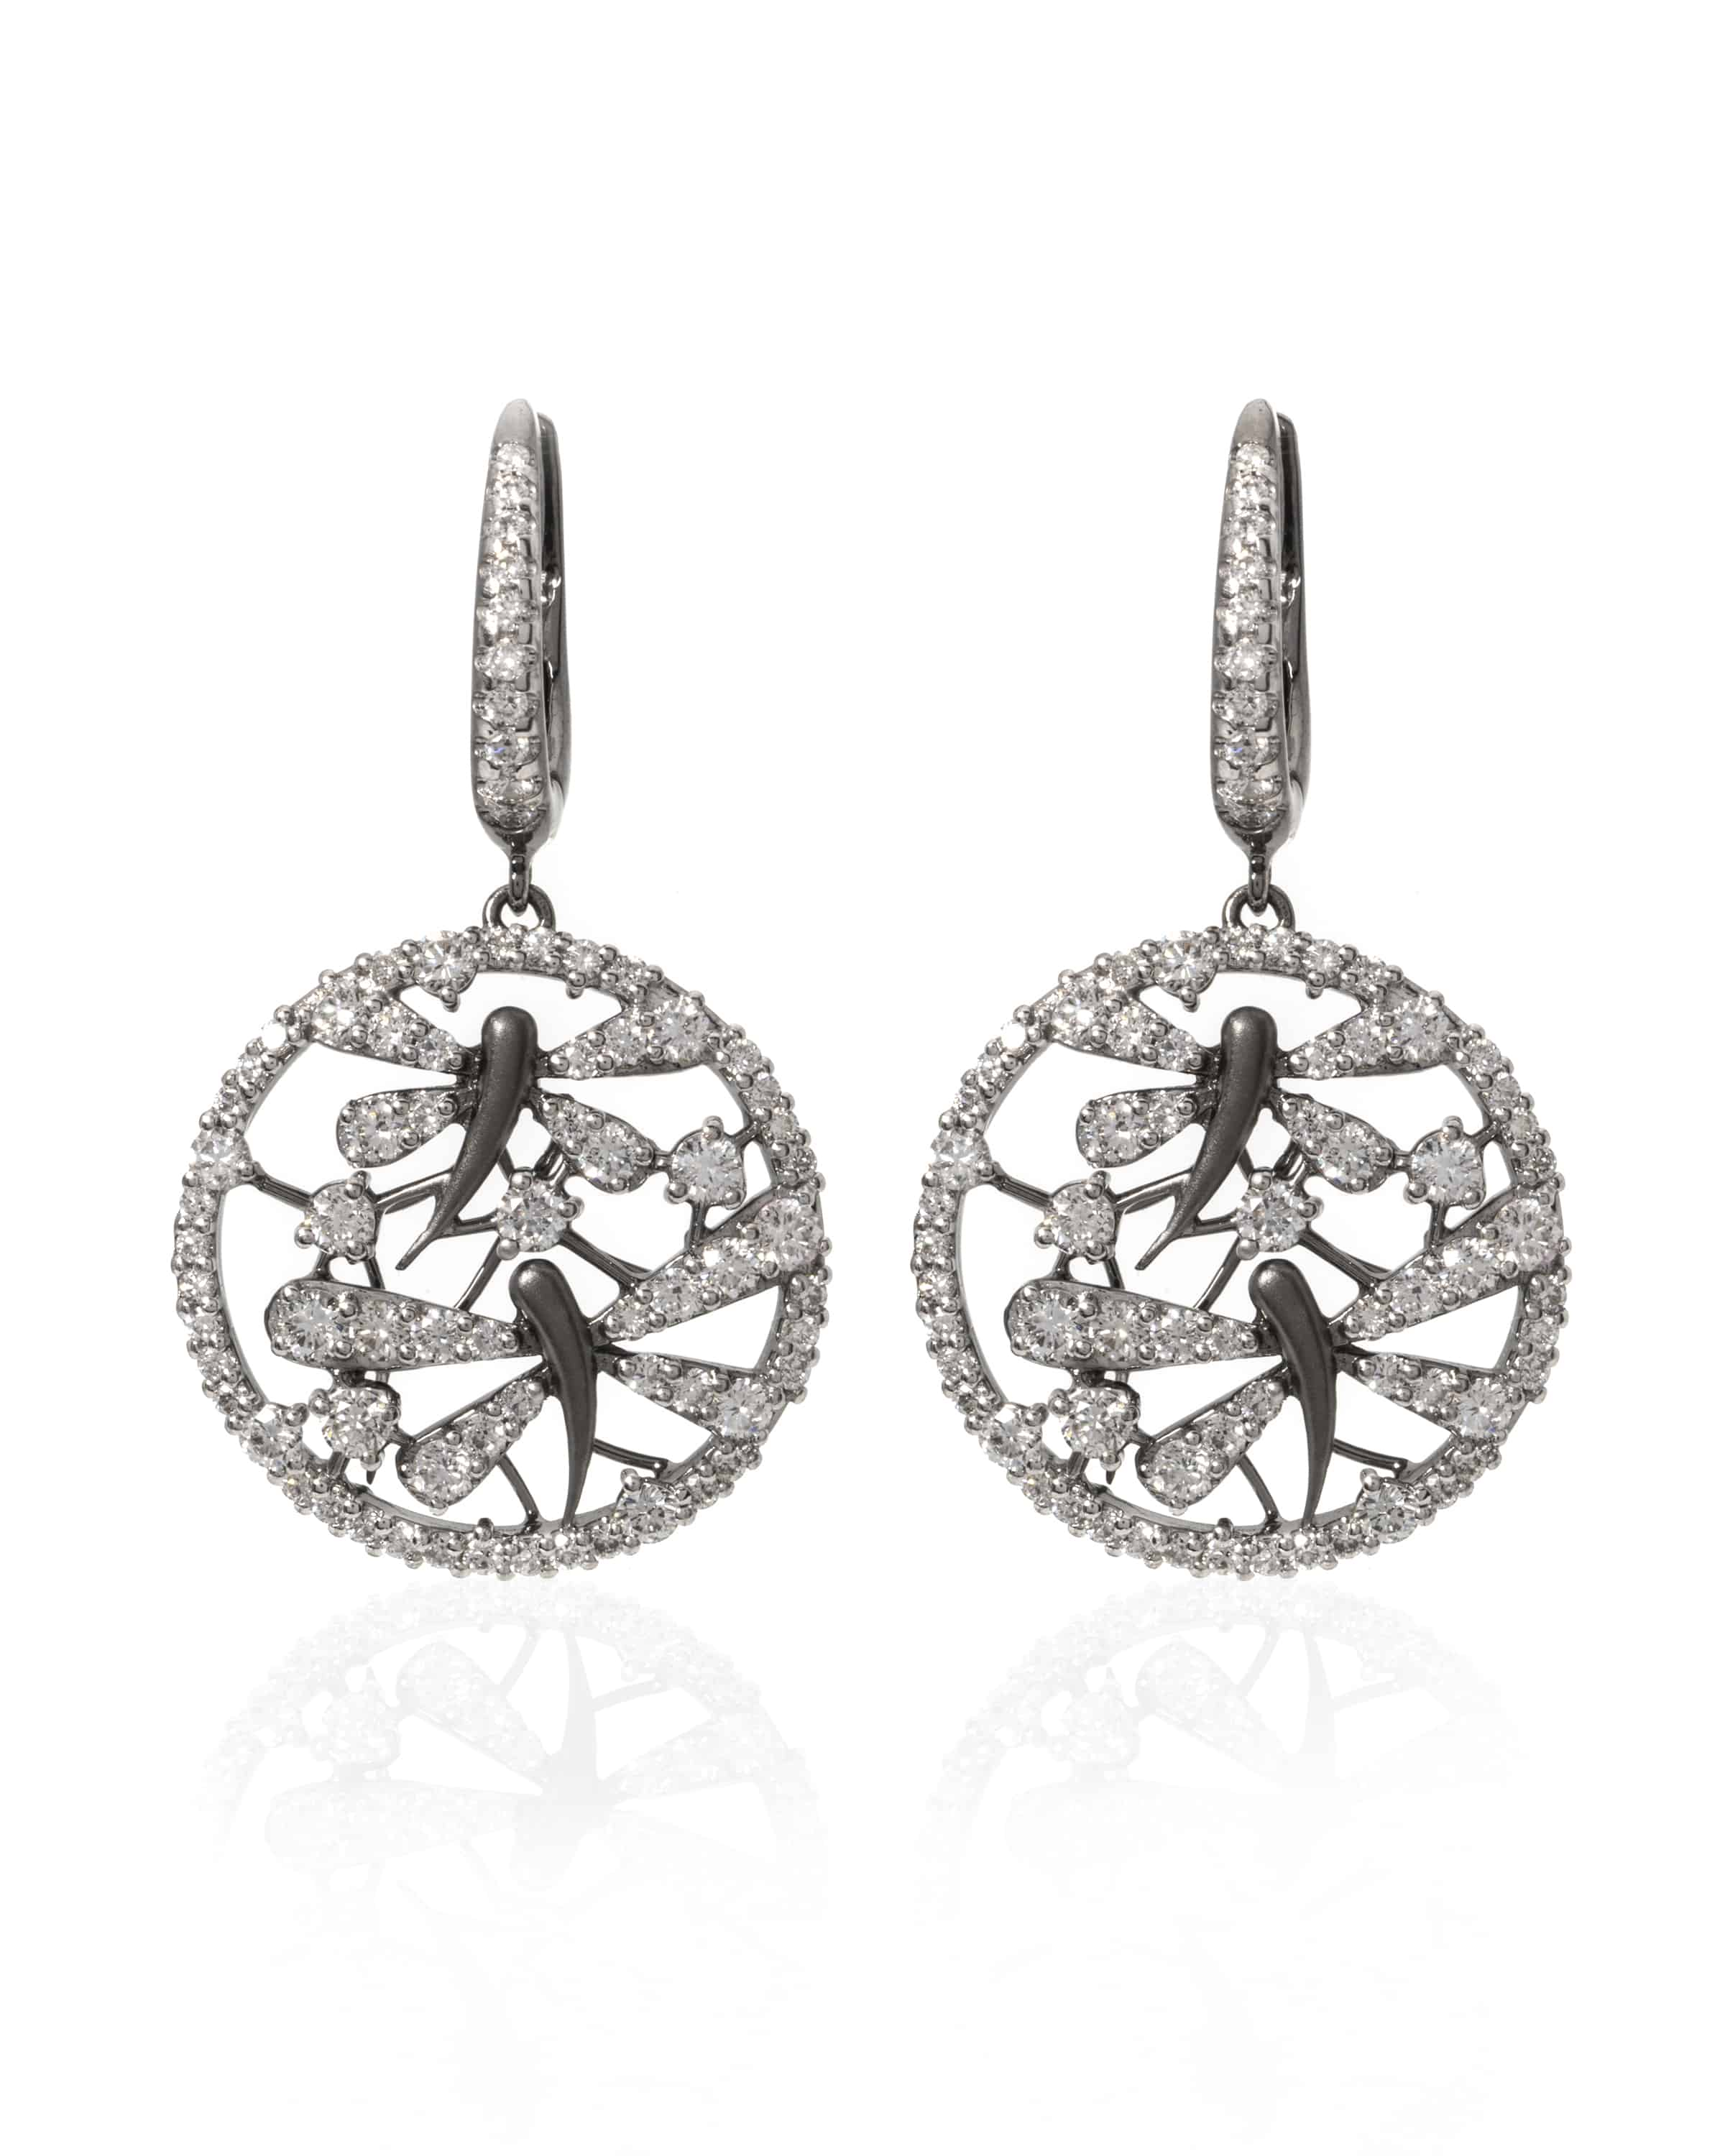 Crivelli 18k White Gold Diamond Drop Earrings 372-1999 - 55052119